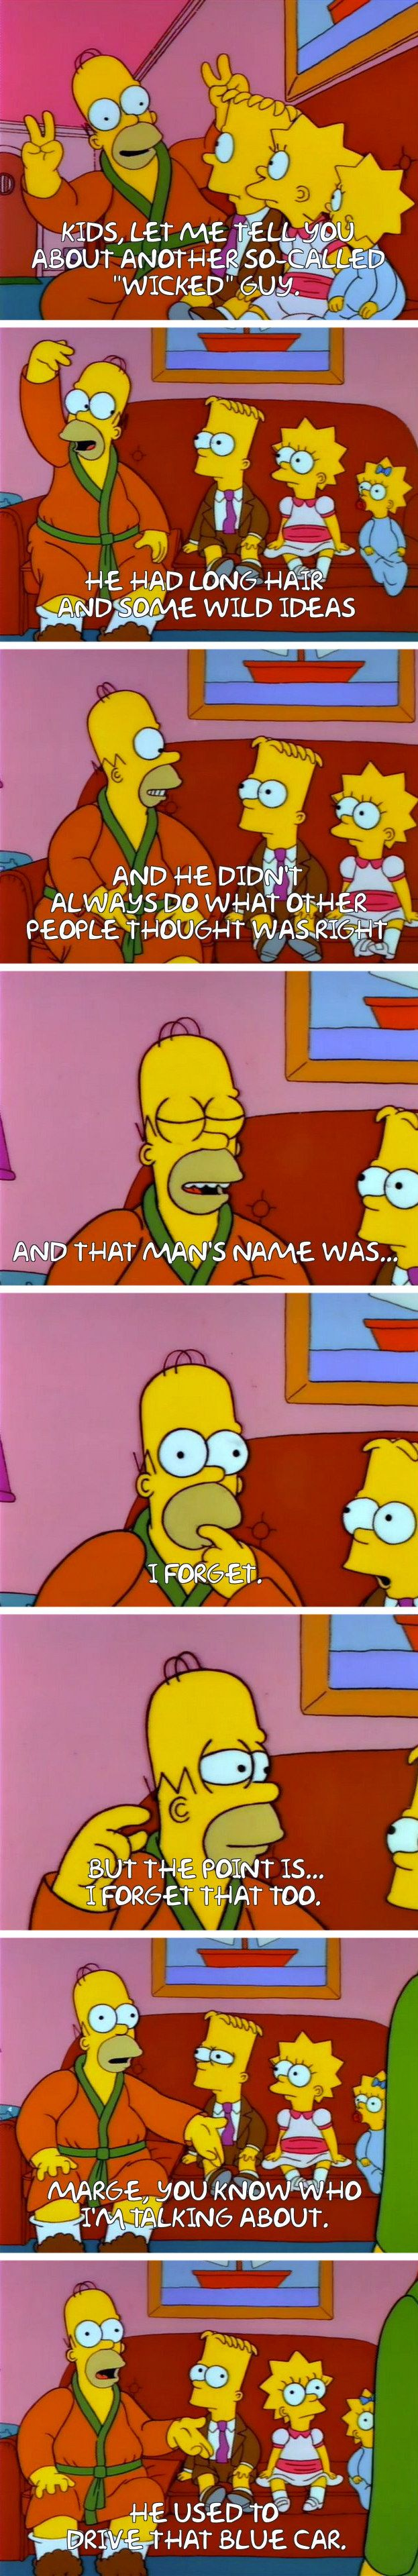 217 best The Simpsons images on Pinterest